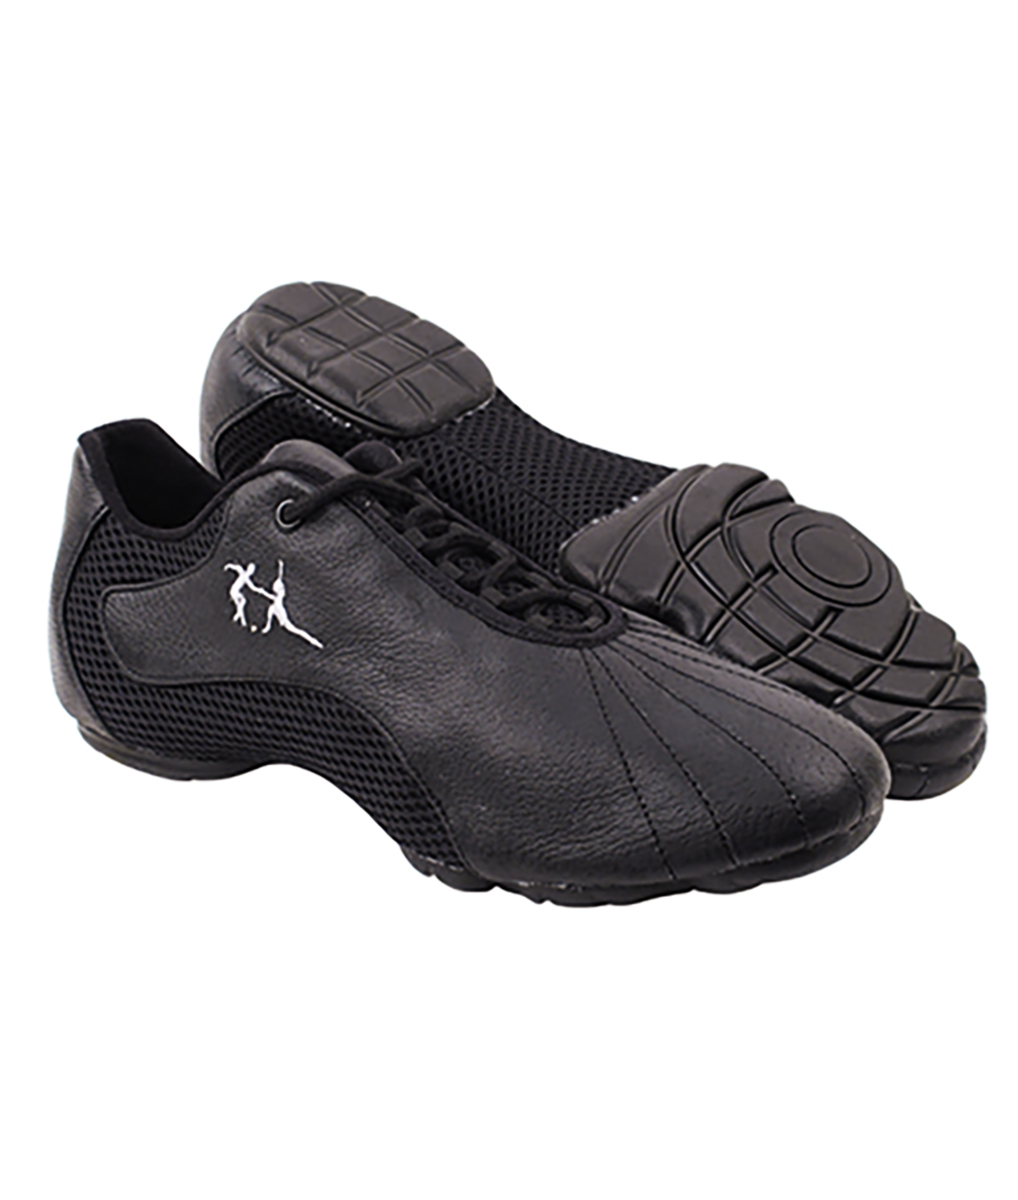 86b7d6e88 Very Fine Dance Sneakers - VFSN016 - Black Leather | Flamingo Sportswear